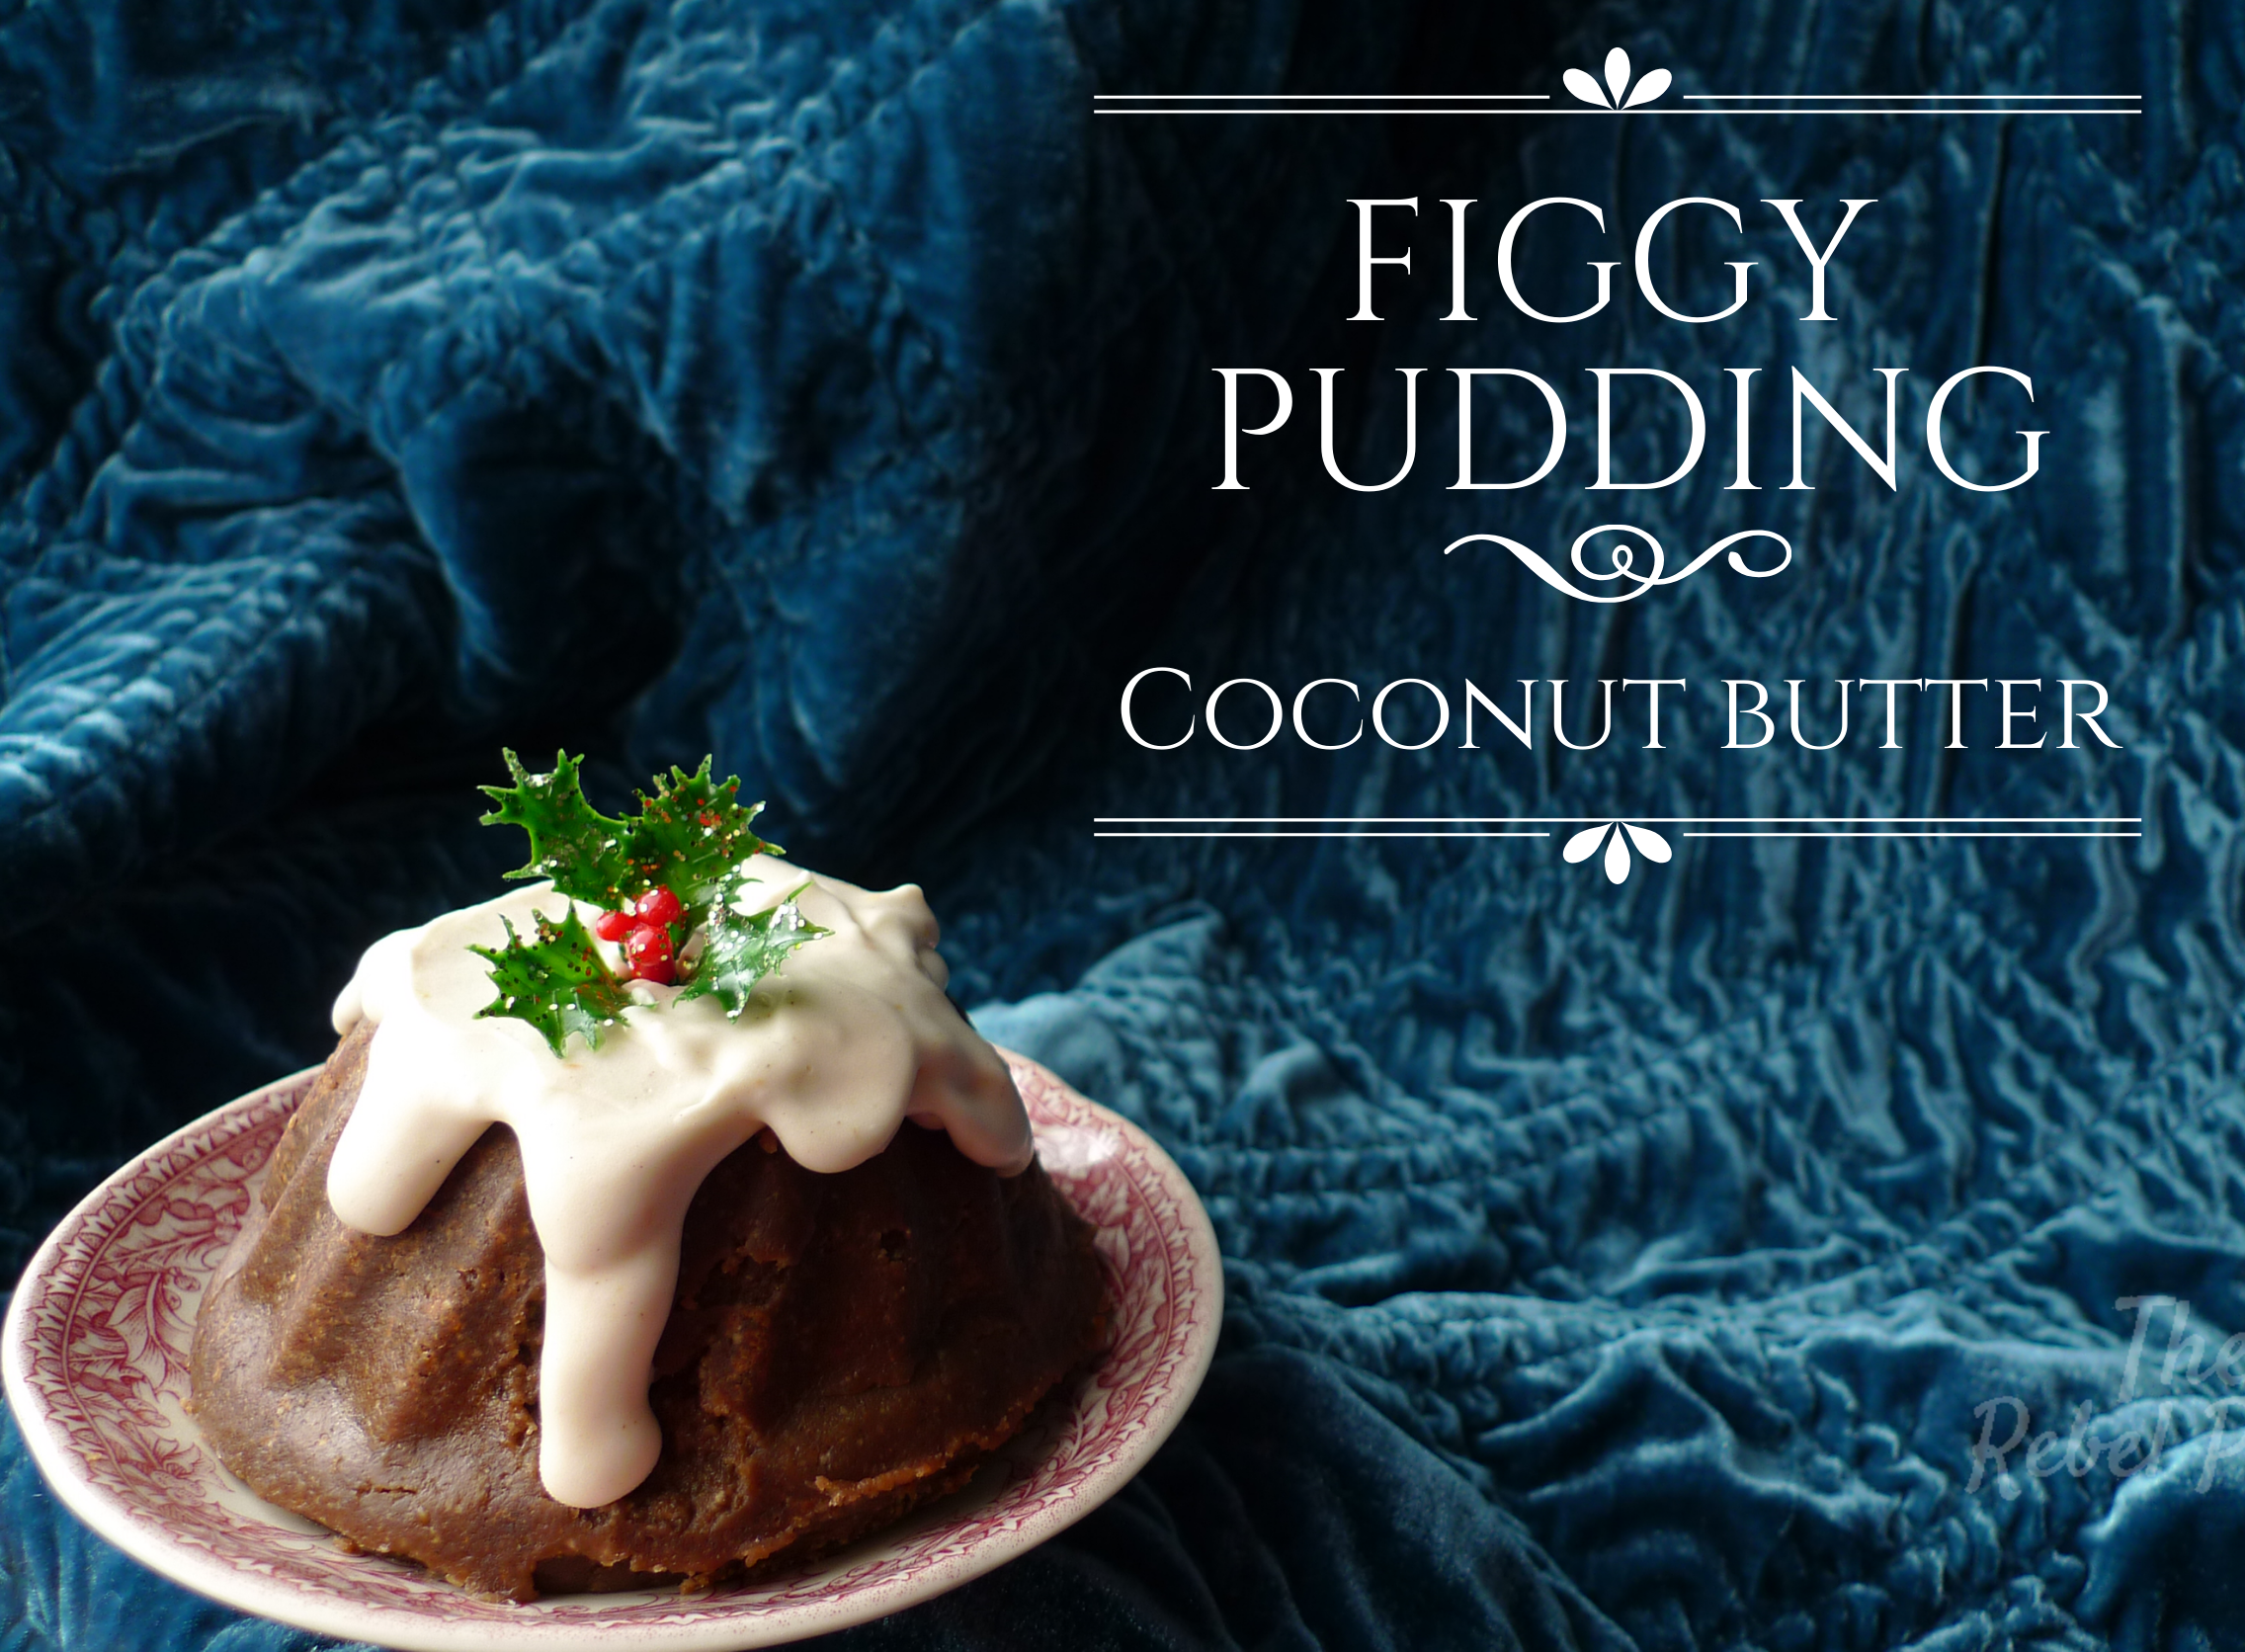 Figgy pudding coconut butter on an ornate plate, topped with coconut cream and a sprig of holly